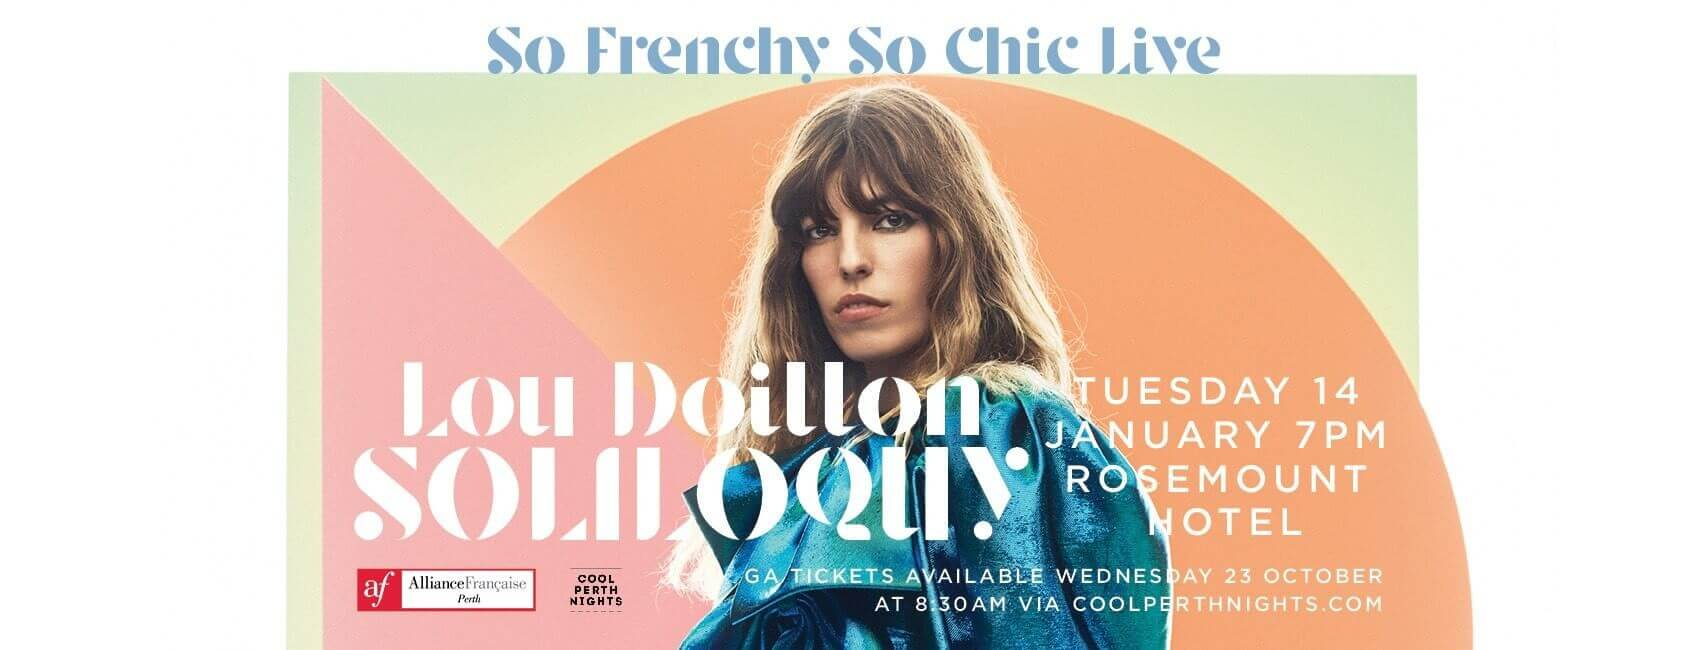 So Frenchy So Chic Live: Lou Doillon